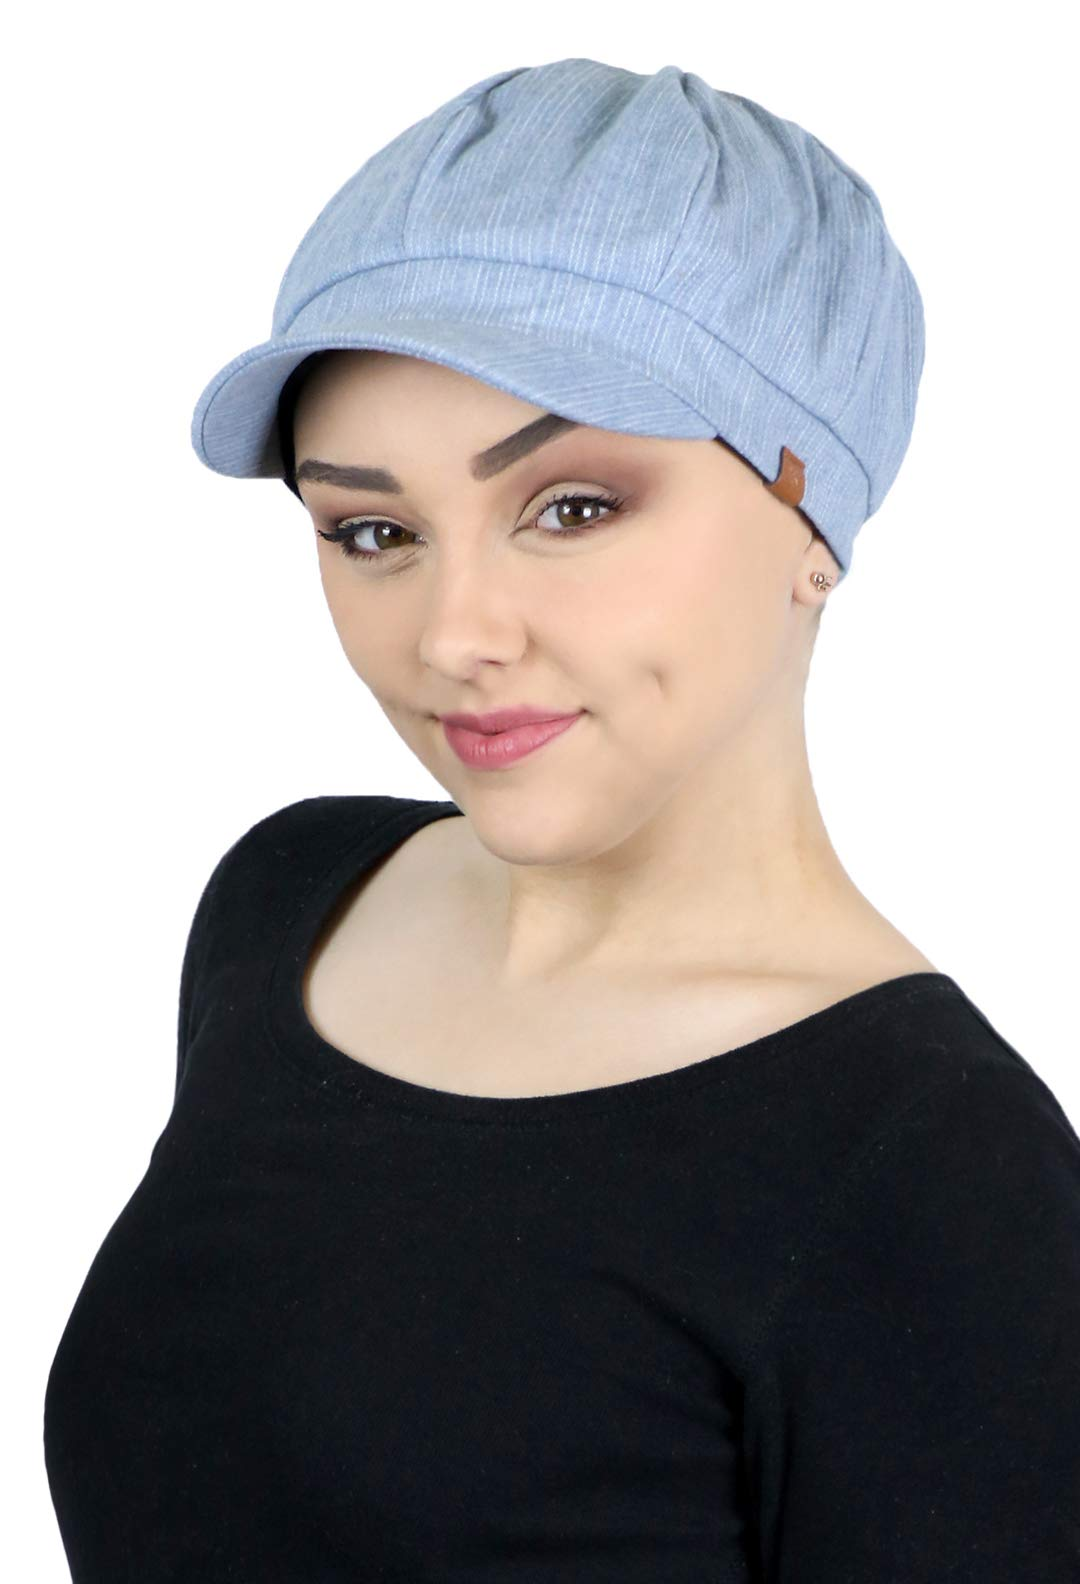 Newsboy Cap for Women Cabbie Gatsby Summer Hats Ladies Chemo Headwear Head Coverings Denim (Chambray)